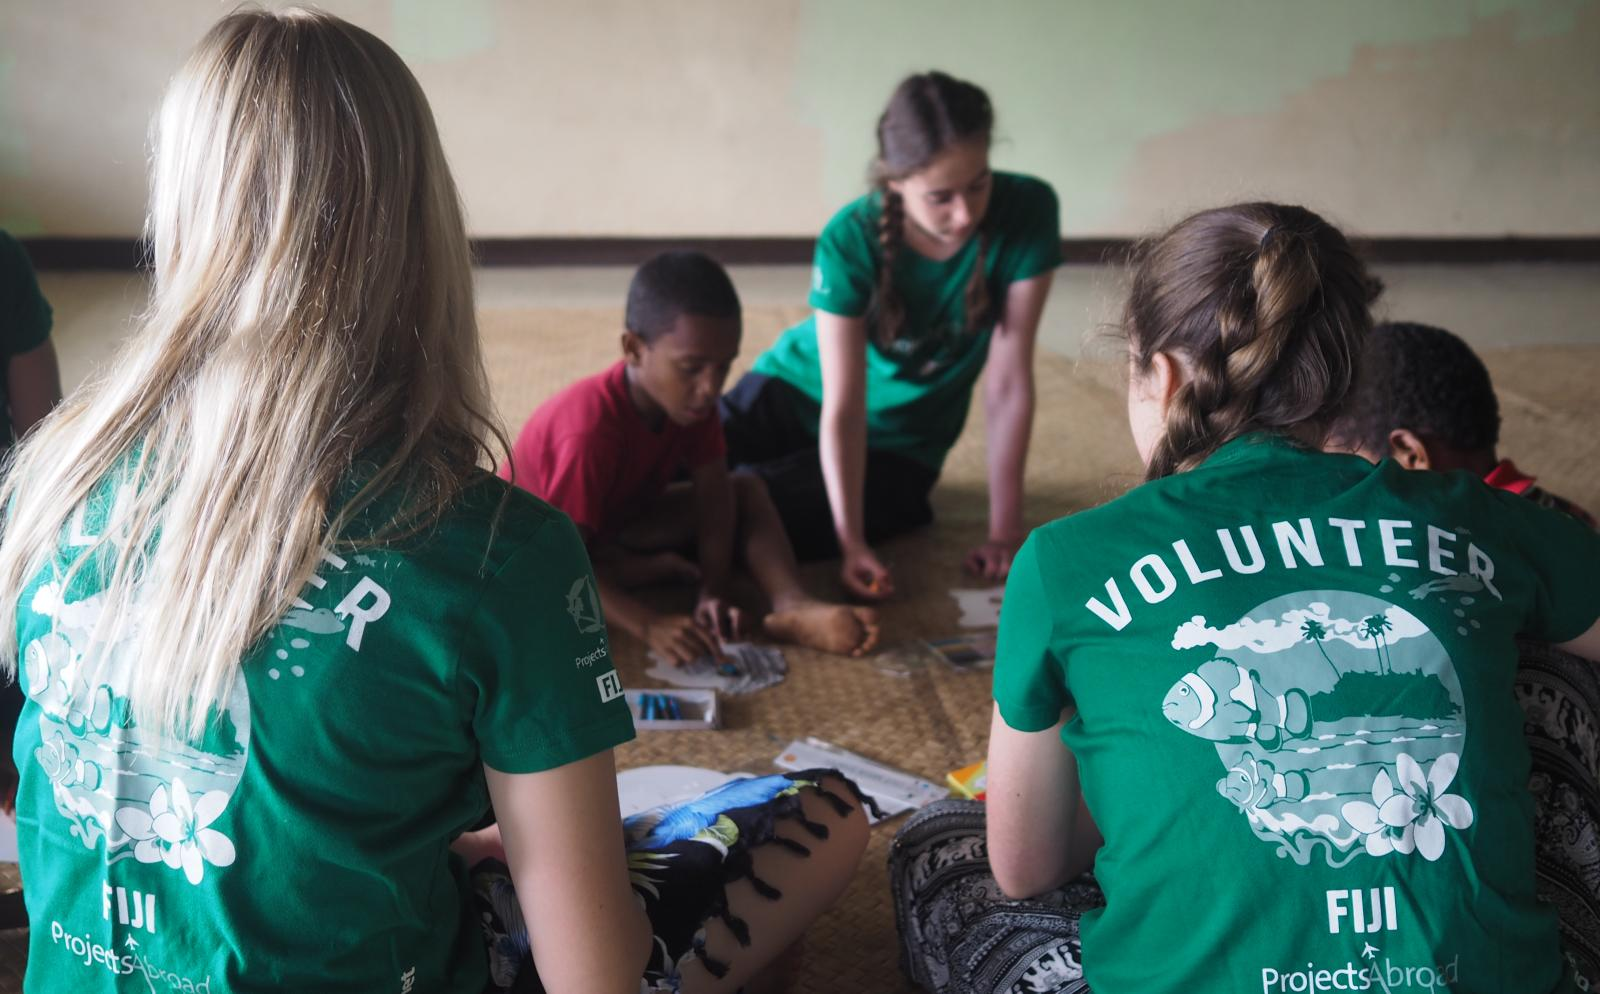 A Projects Abroad volunteer assists children in Fiji with their homework.